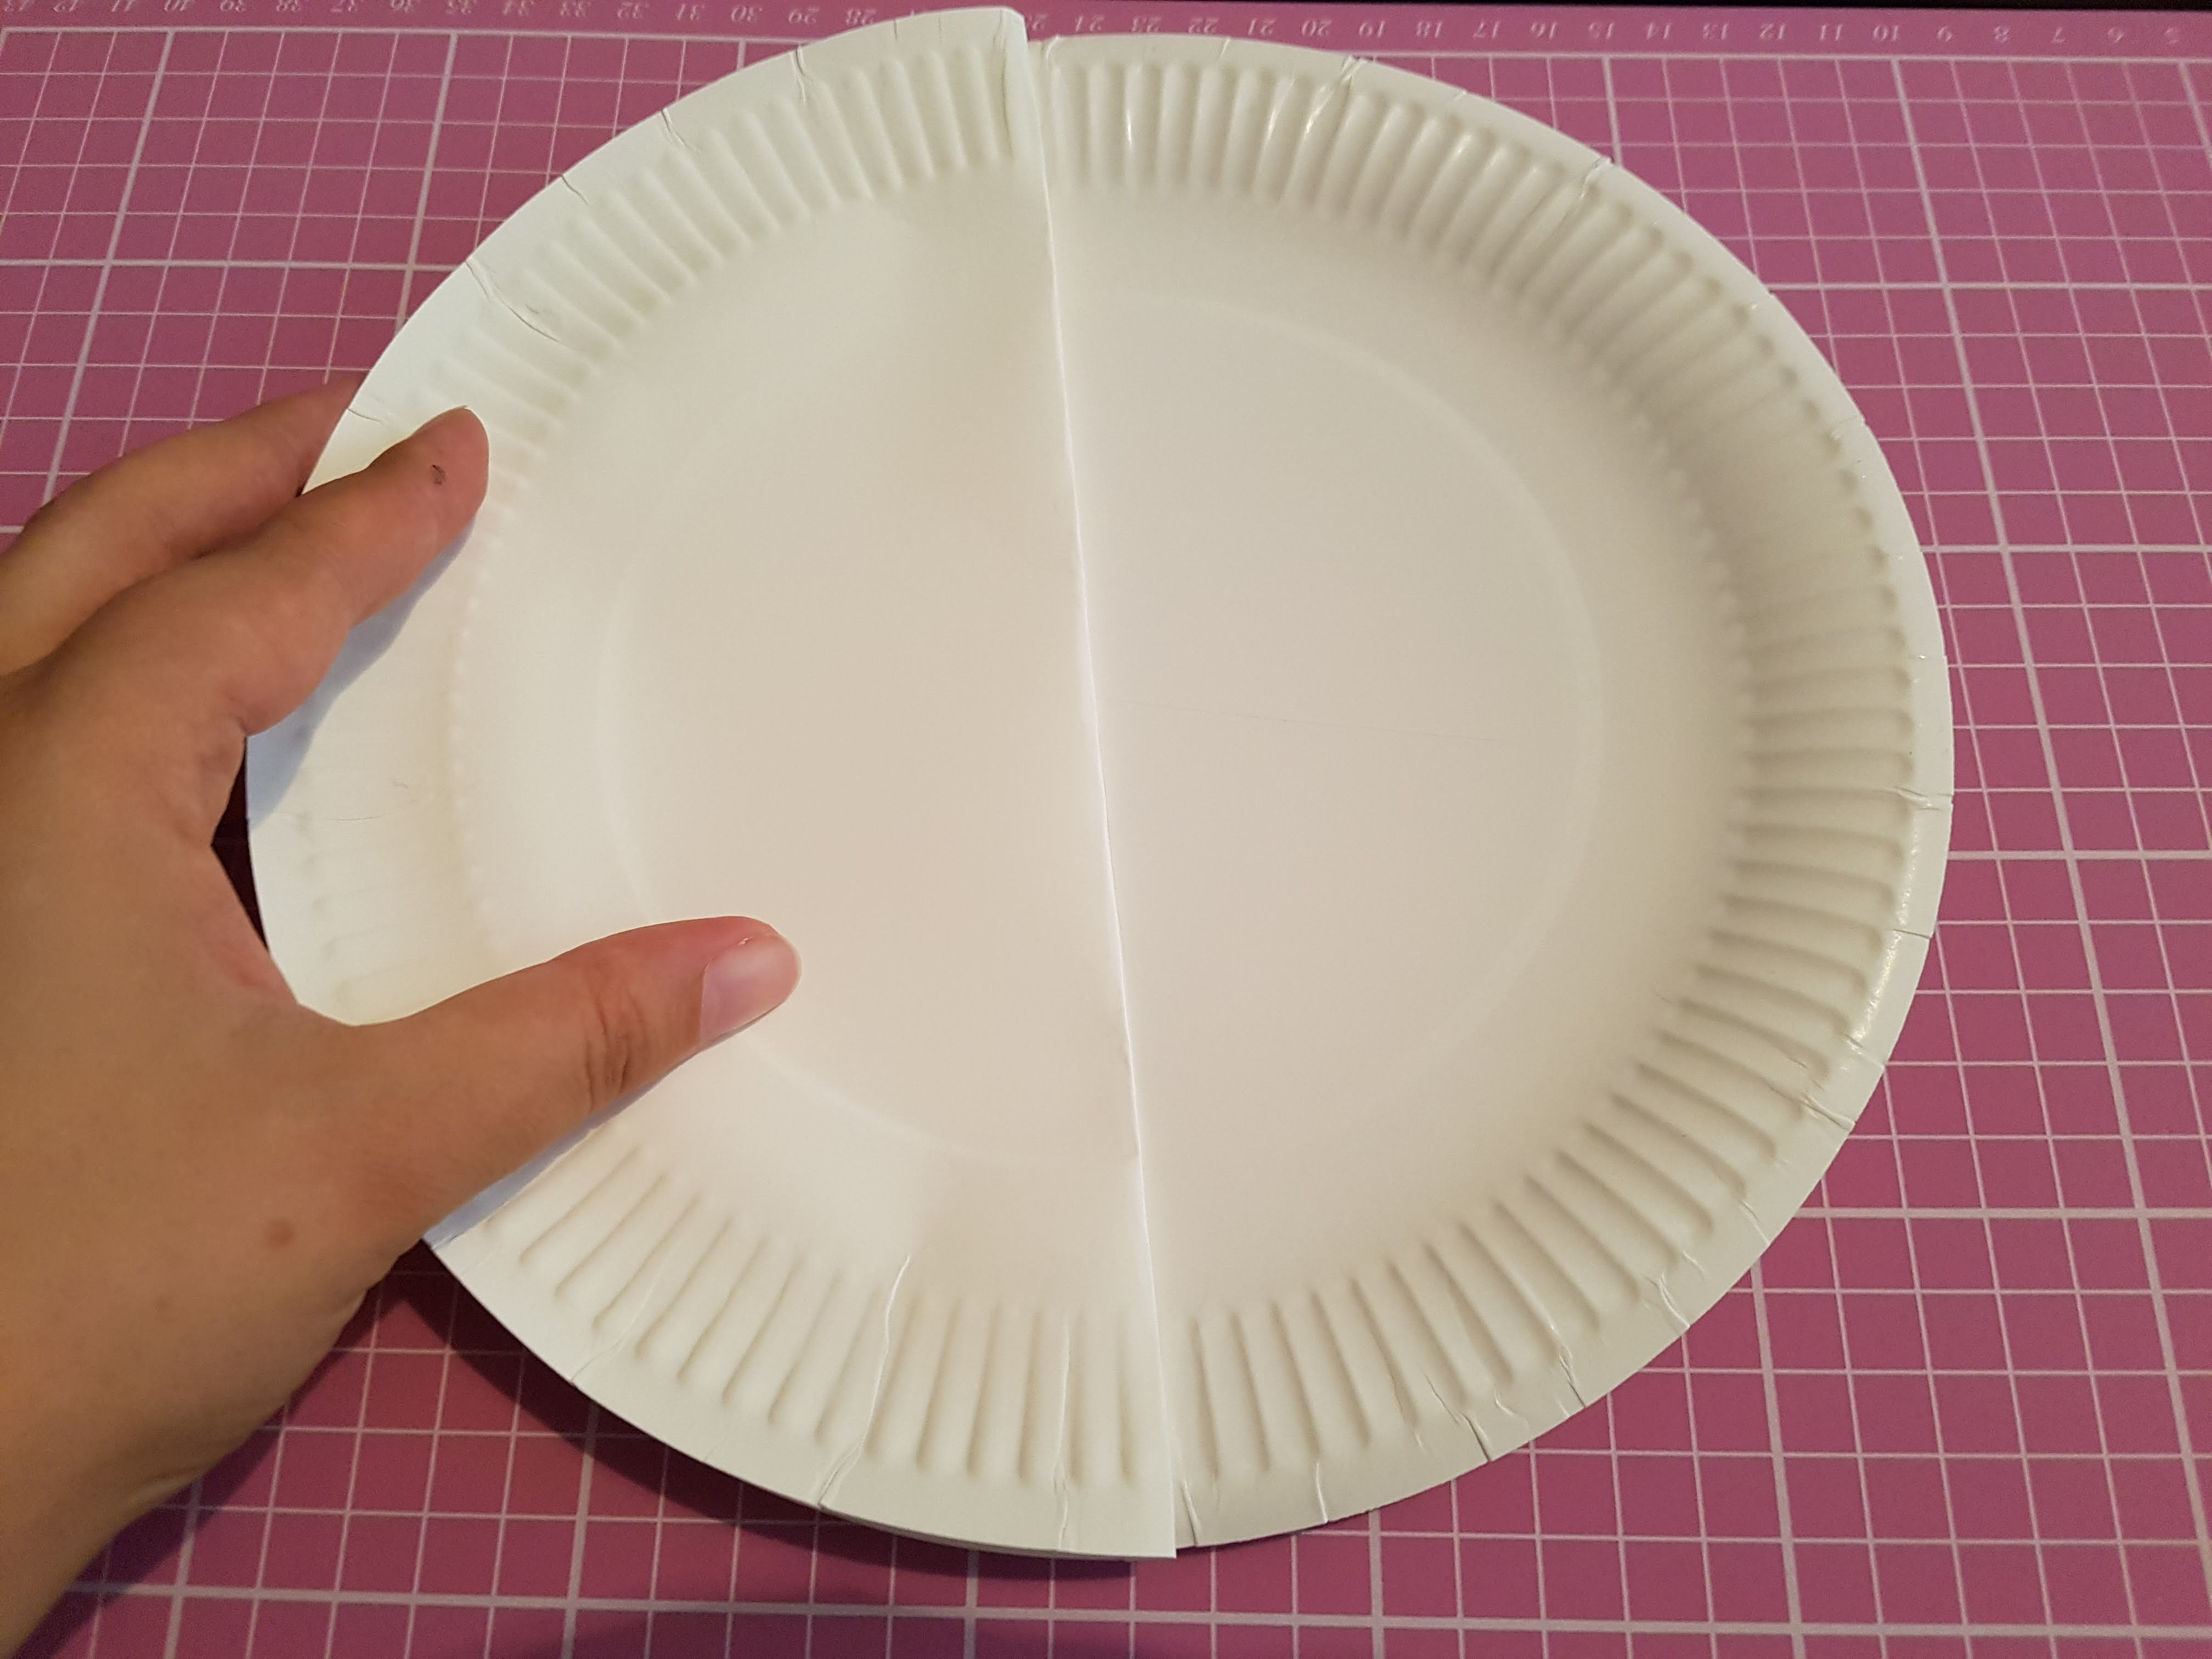 Using a folded paper plate to find diameters